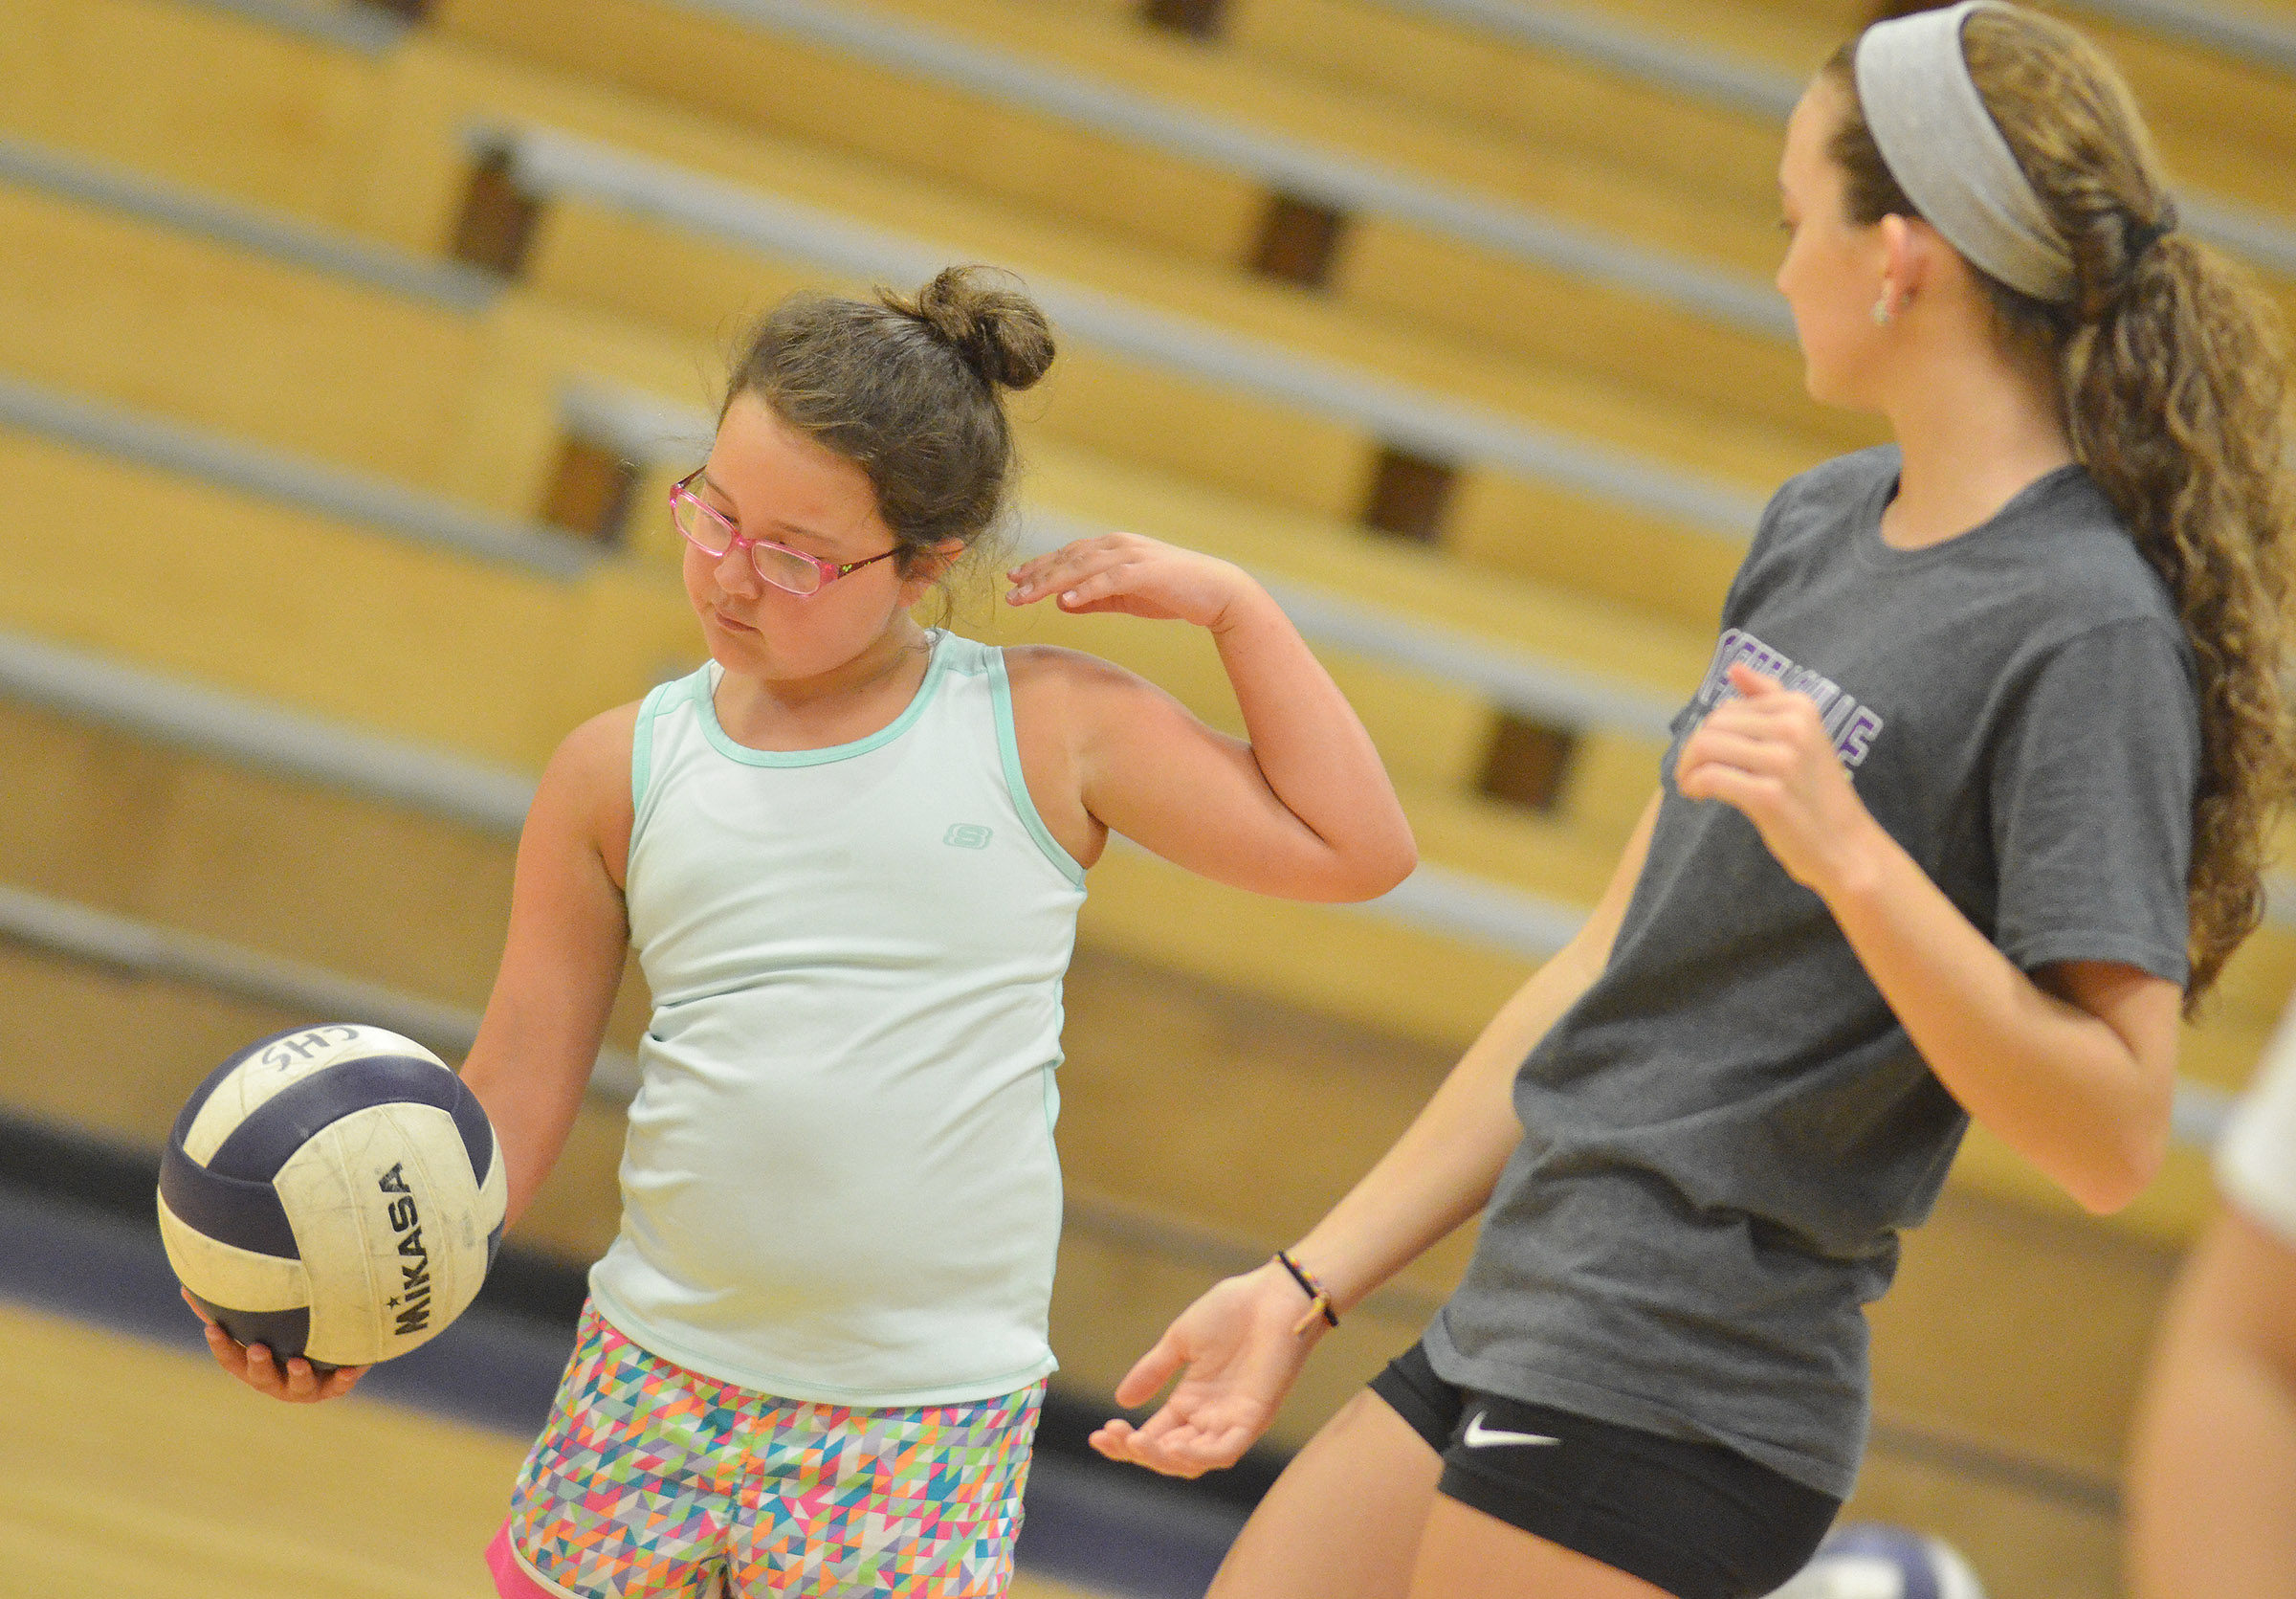 CHS junior Salena Ritchie helps Hadley Brasher, who attends school in Bowling Green, serve.